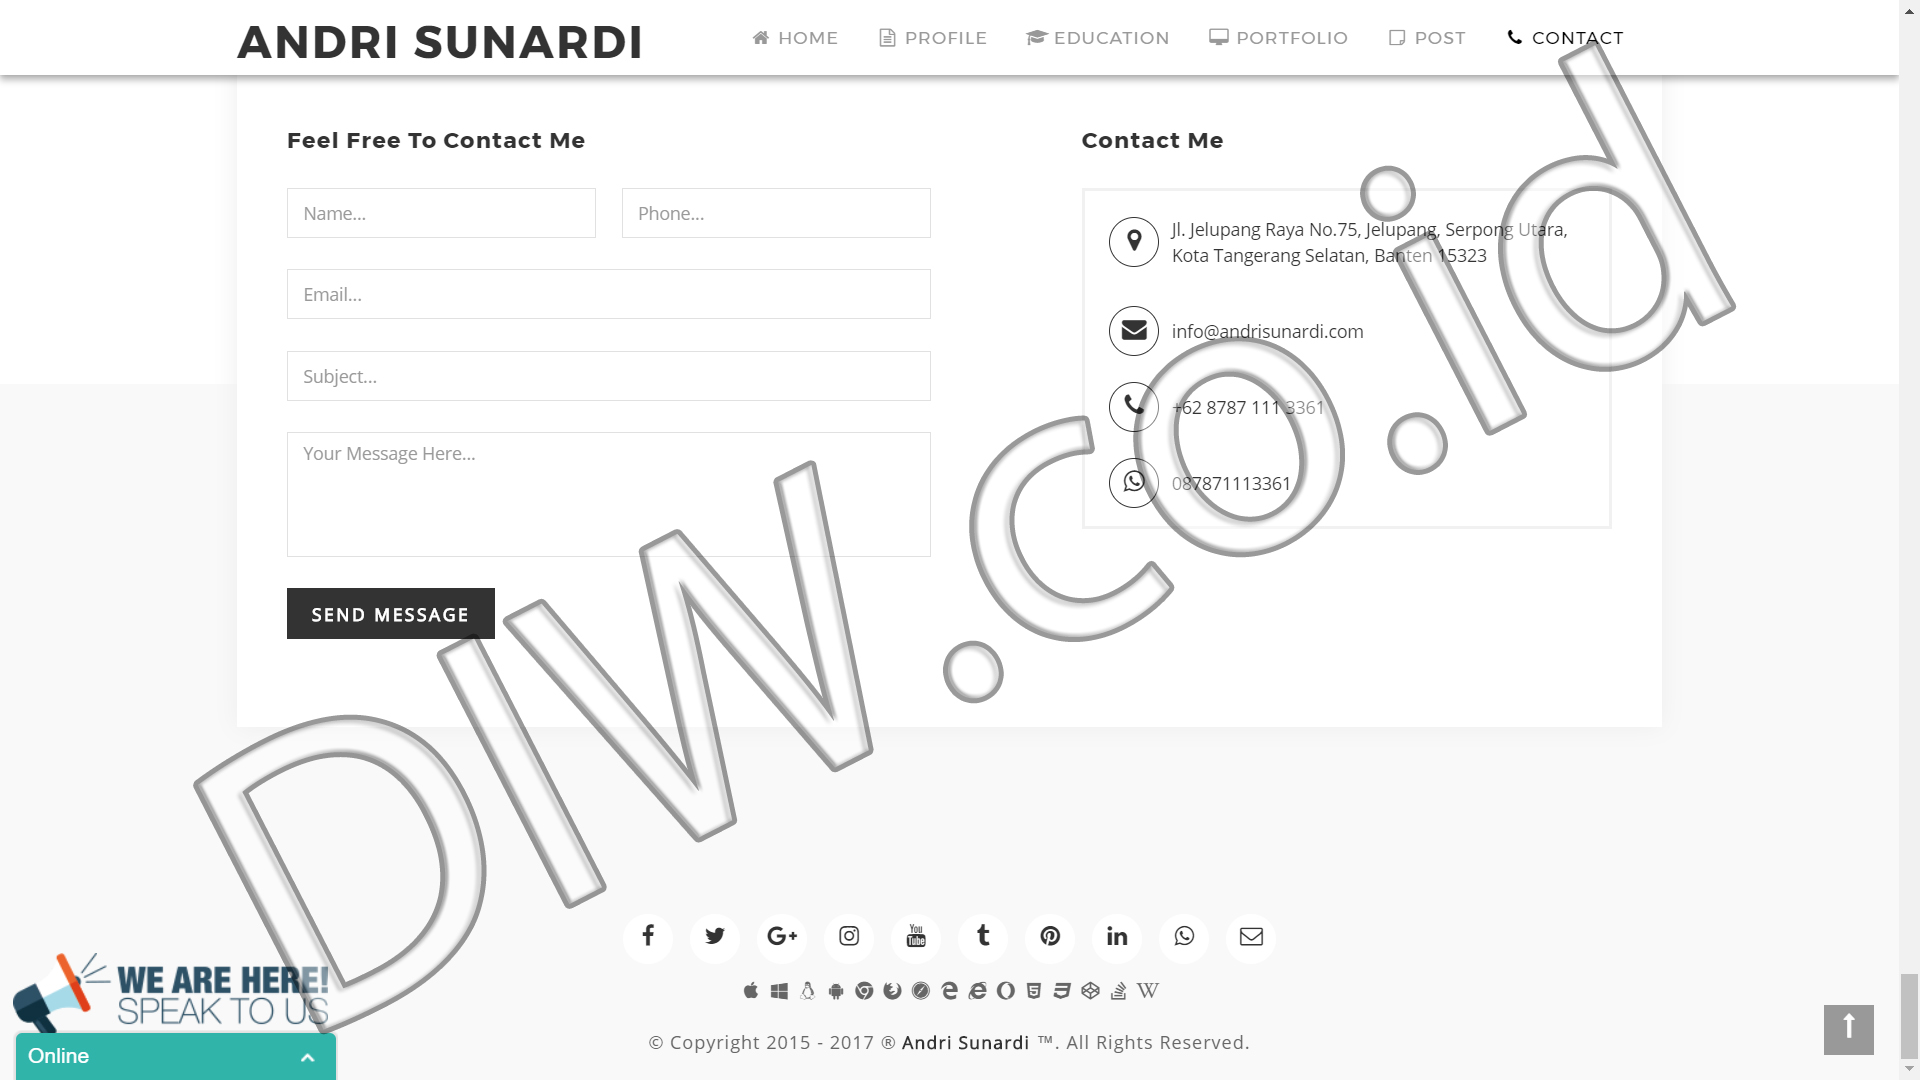 Portfolio 5 - Andri Sunardi - Andri Sunardi - Freelancer - Web Developer - CEO DIW.co.id